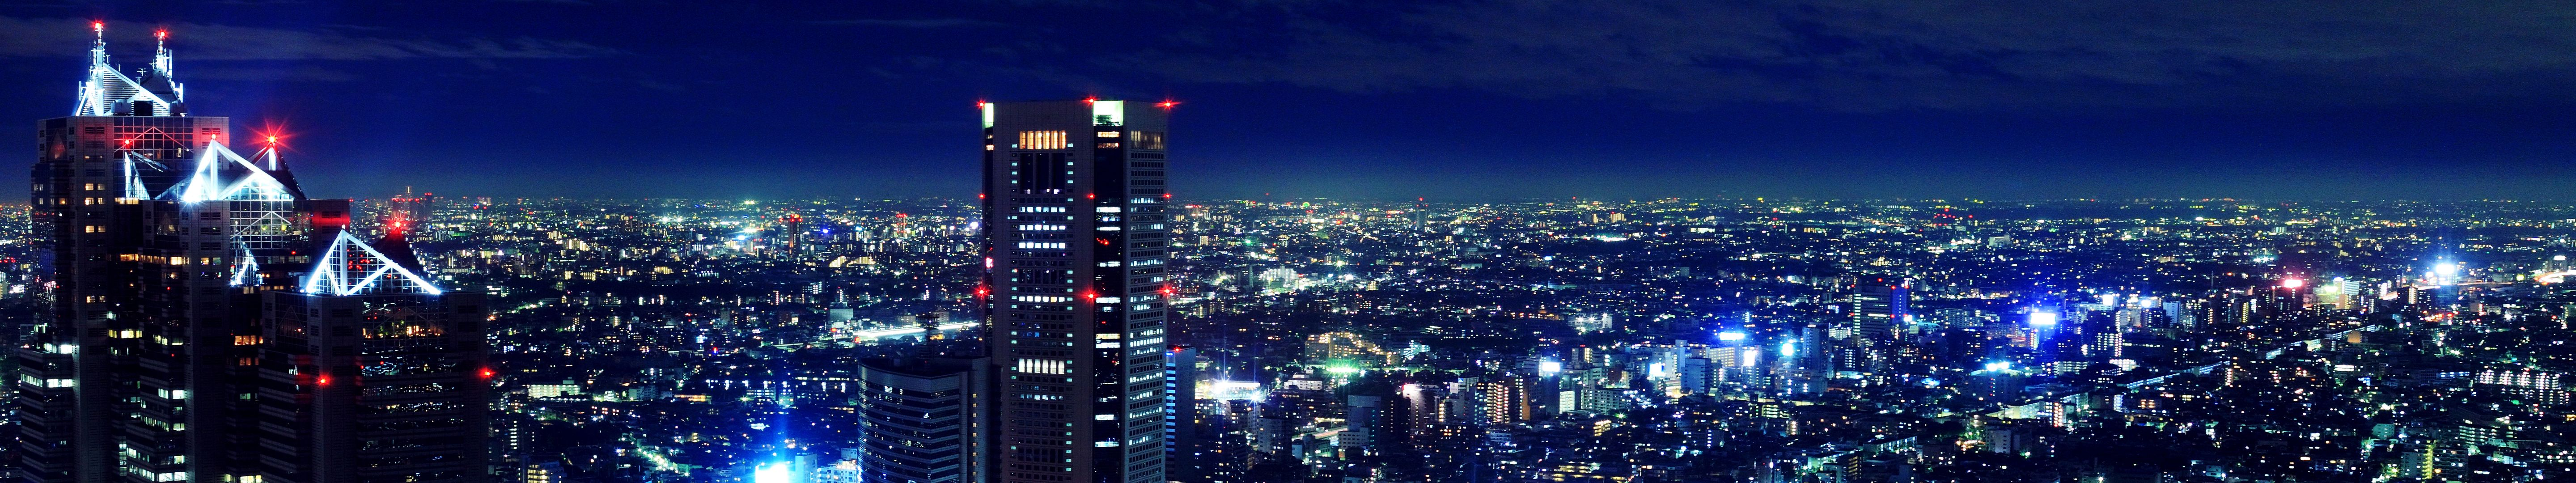 158 5760x1080 Wallpapers Hd Backgrounds Wallpaper Abyss Cityscape Hd Backgrounds Night Photography